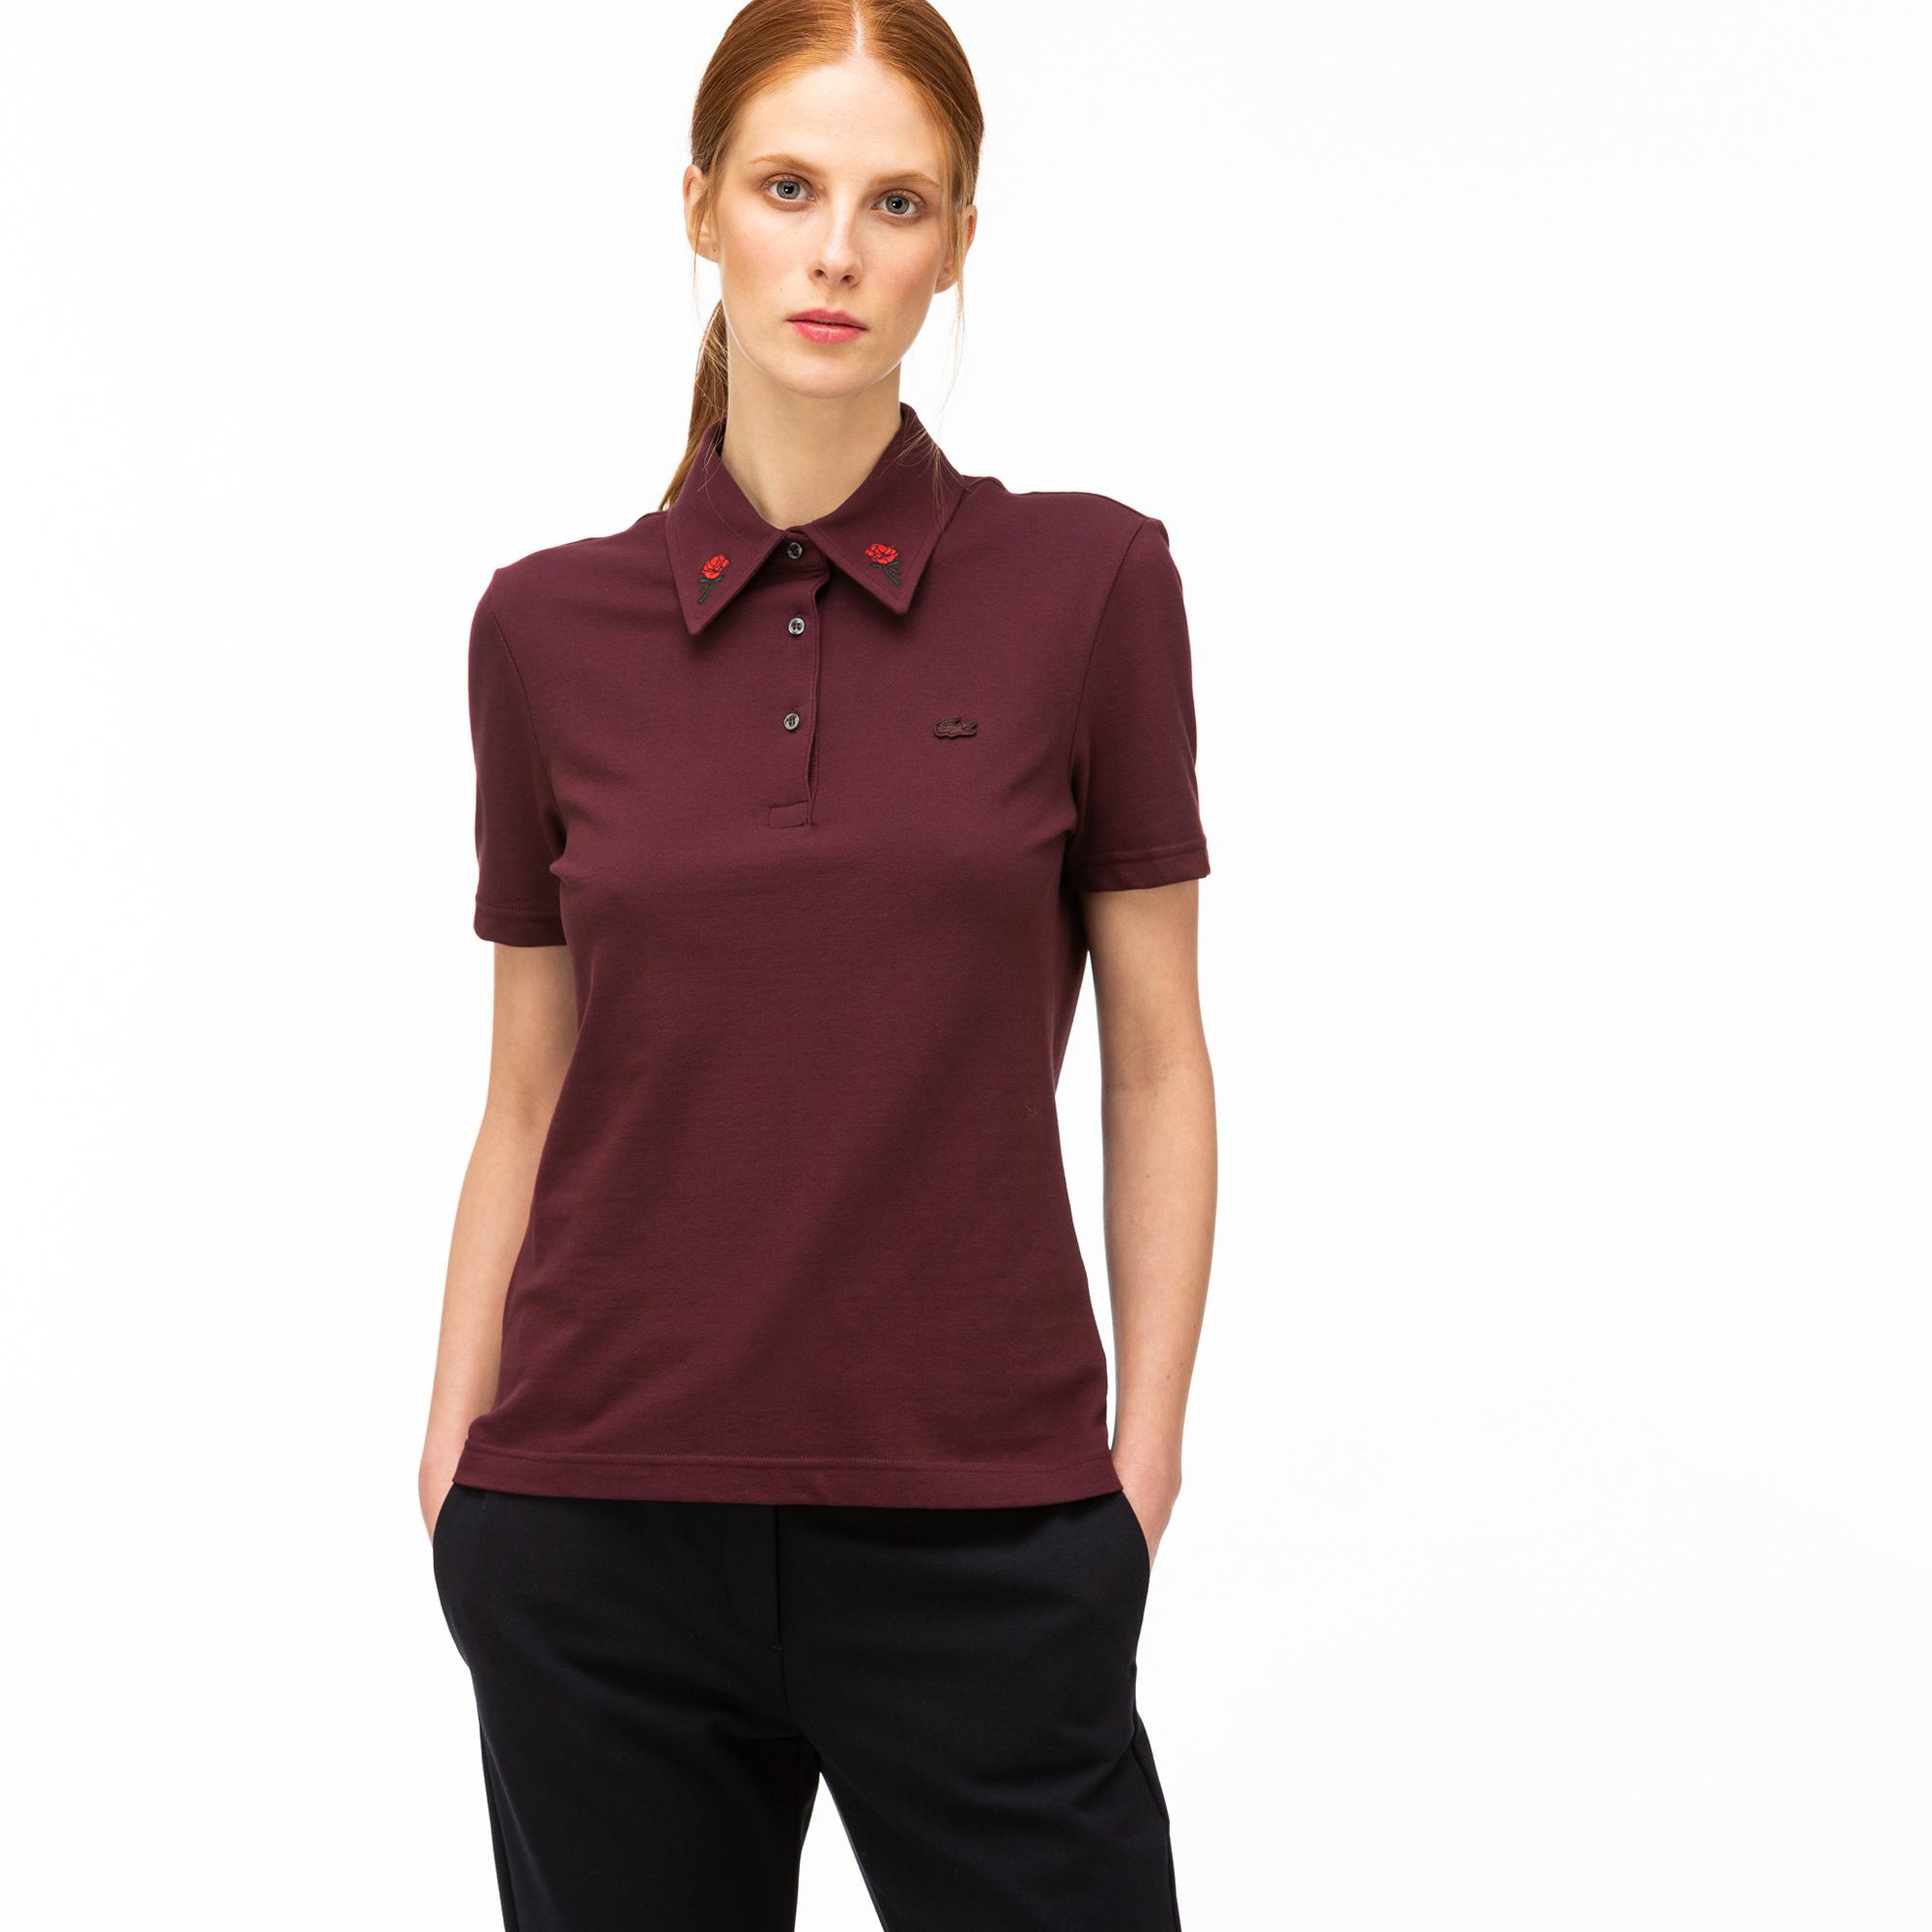 Lacoste L!VE Women's Slim Fit Embroidered Collar Stretch Polo Shirt